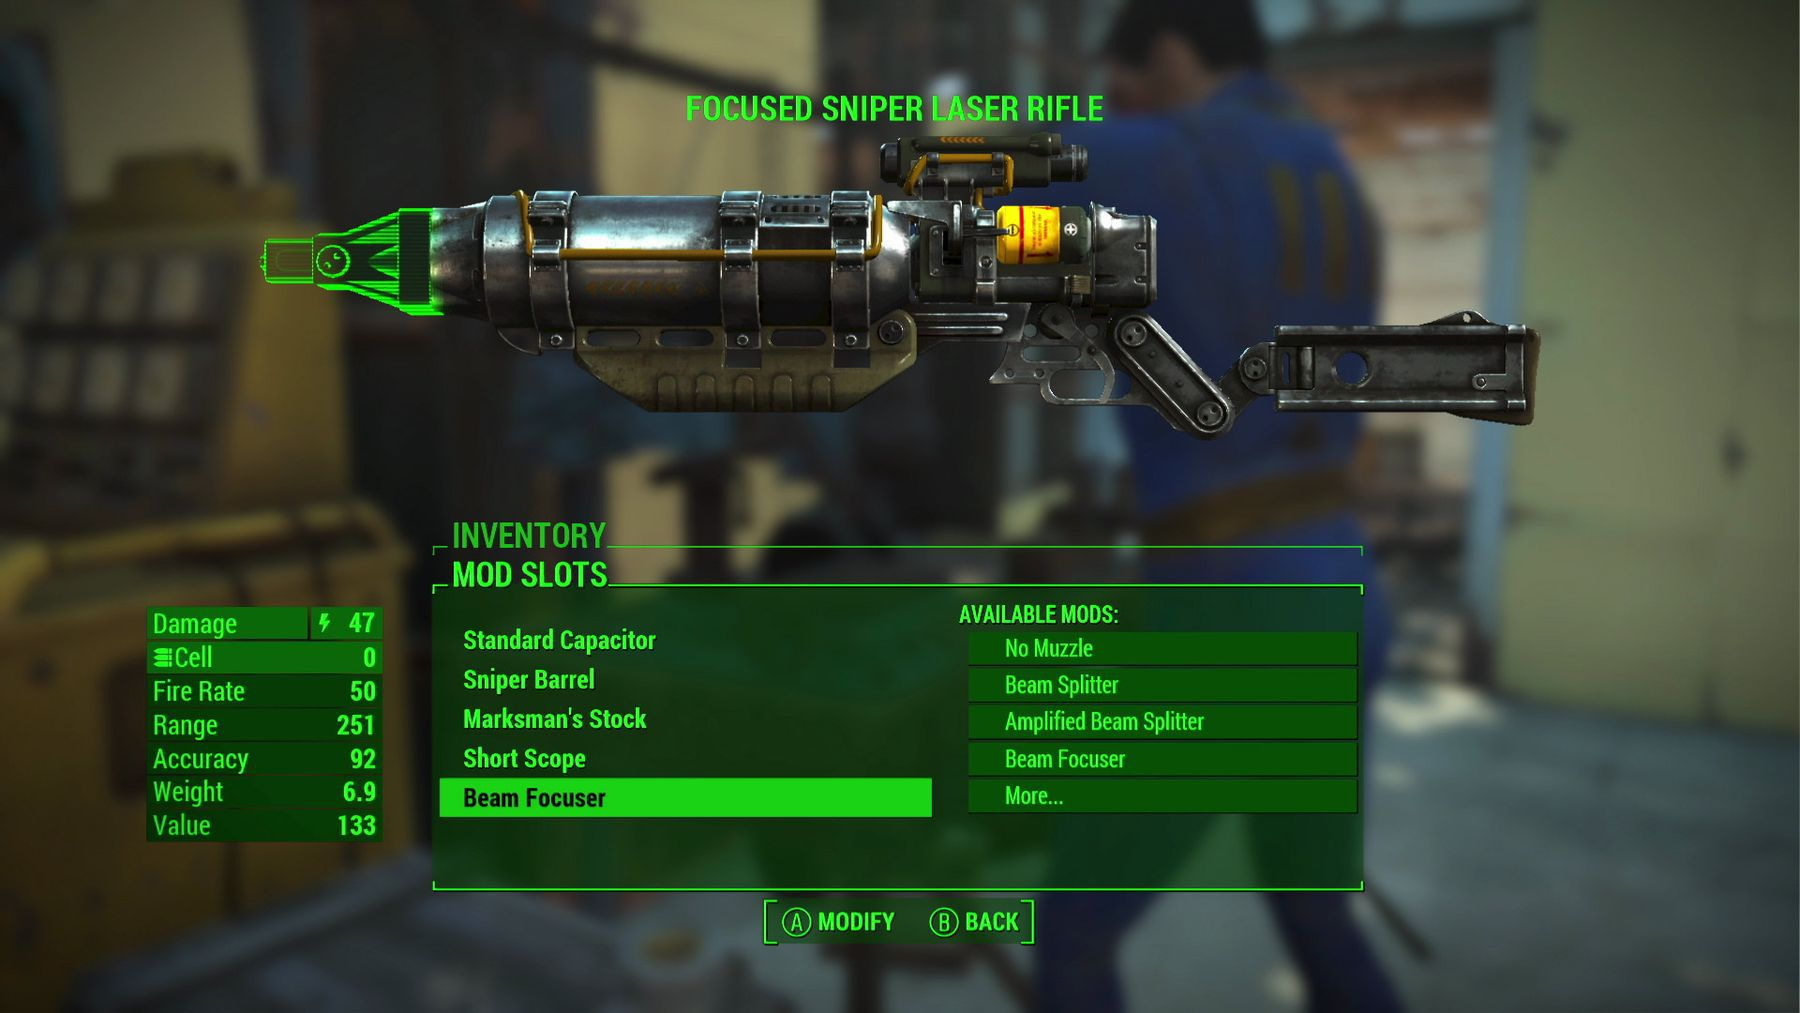 Fallout 4 starter guide: 12 things to know before you play | The Verge